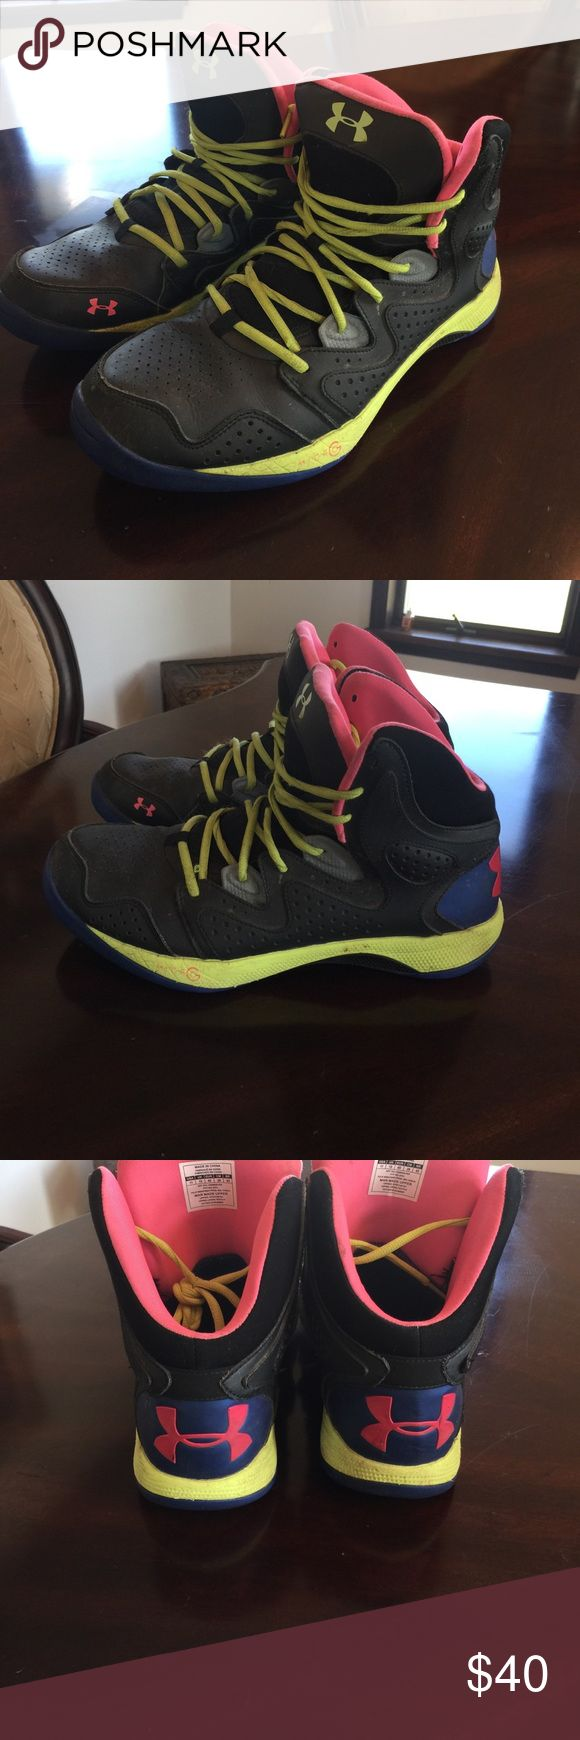 UnderArmor high top basketball shoes Size 11 Good condition, with original box Under Armour Shoes Athletic Shoes